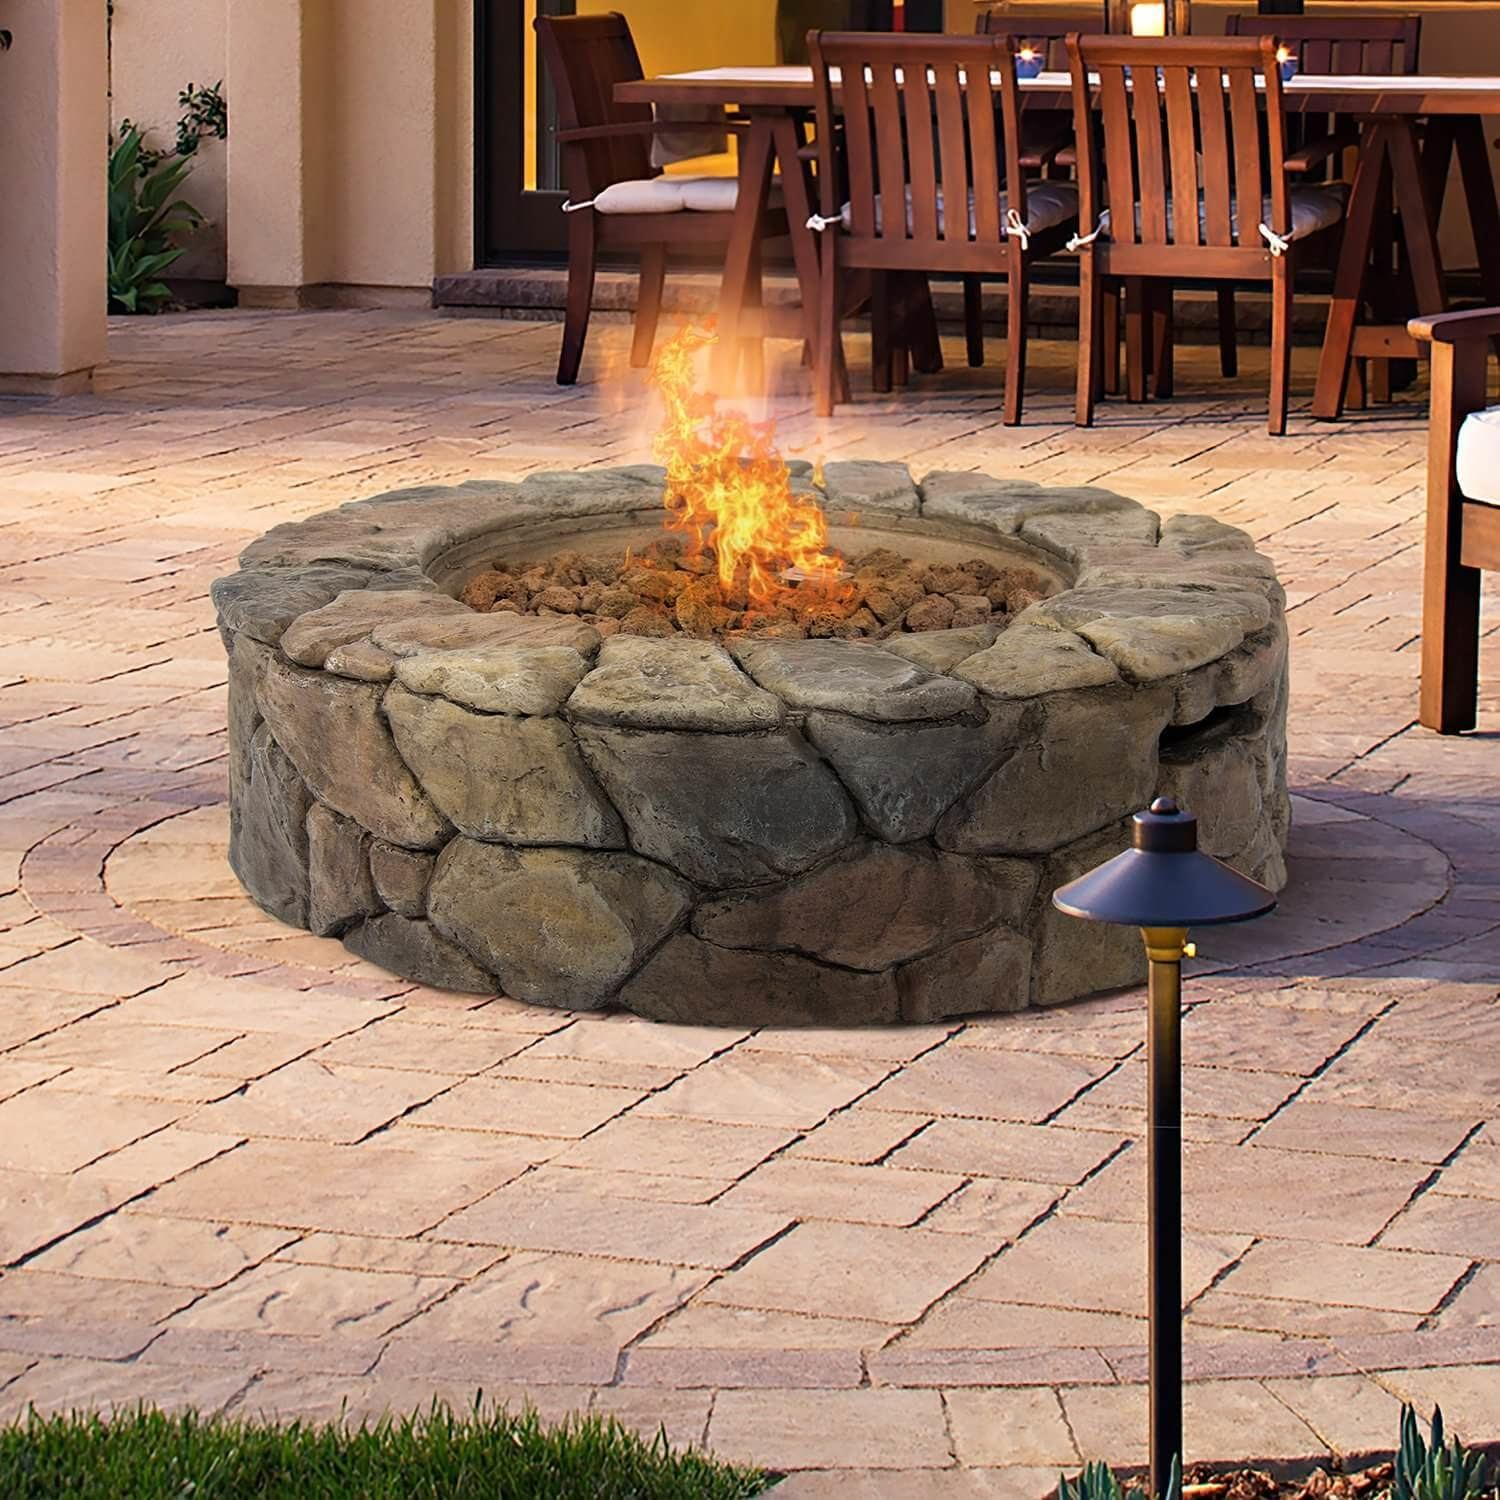 More ideas below: DIY Square Round cinder block fire pit How To Make Ideas  Simple Easy Backyards cinder block fire pit grill Small Painted cinder  block fire